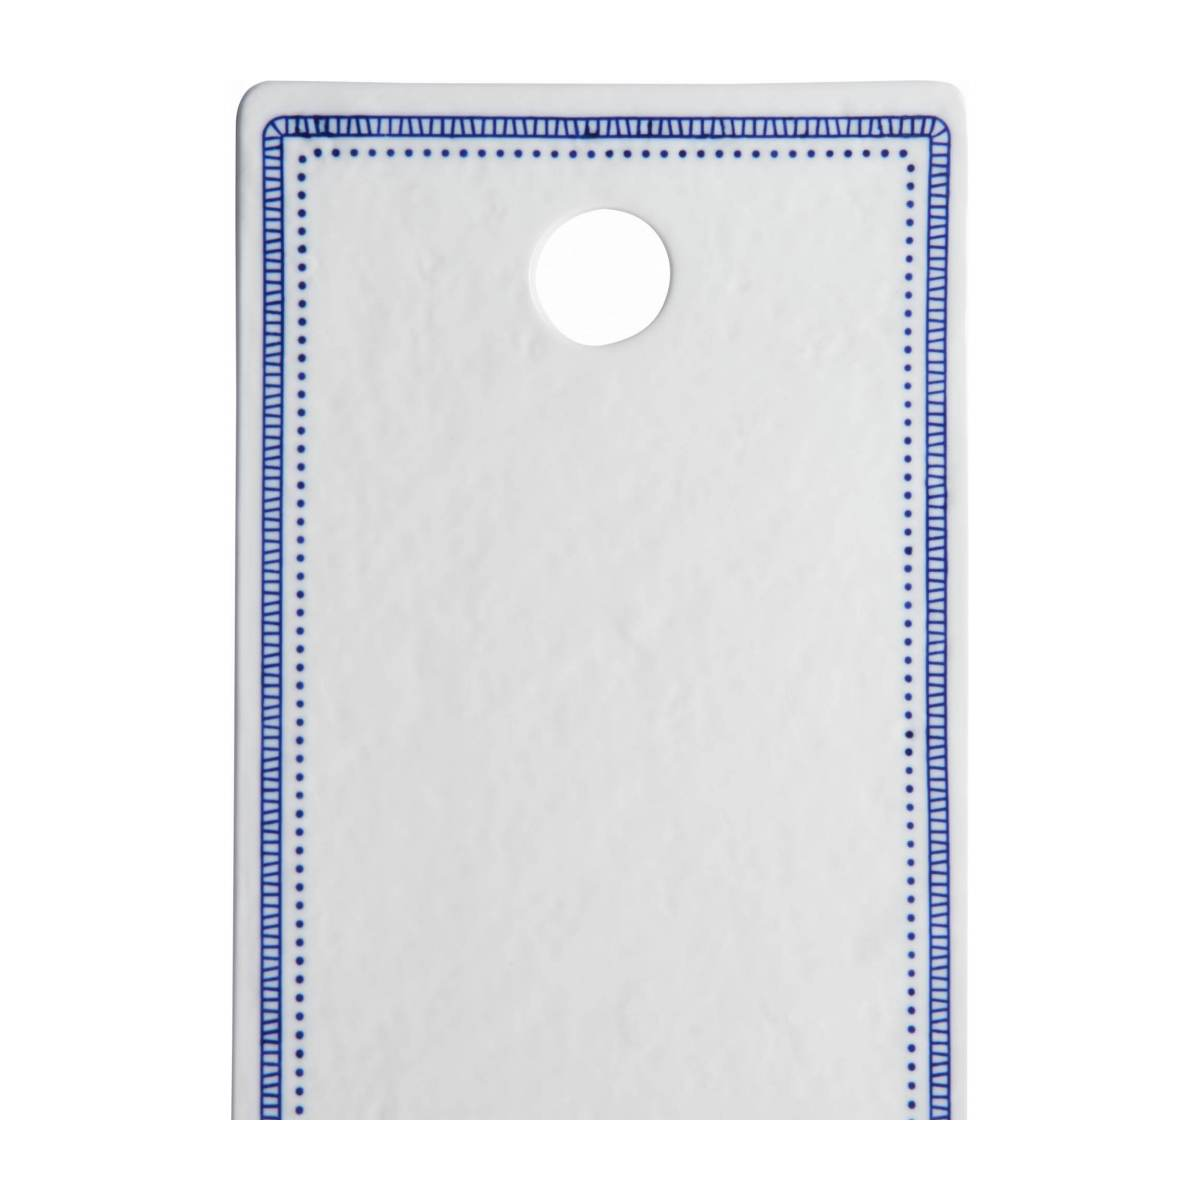 Chopping board made of porcelain 17x29cm, white and blue n°4